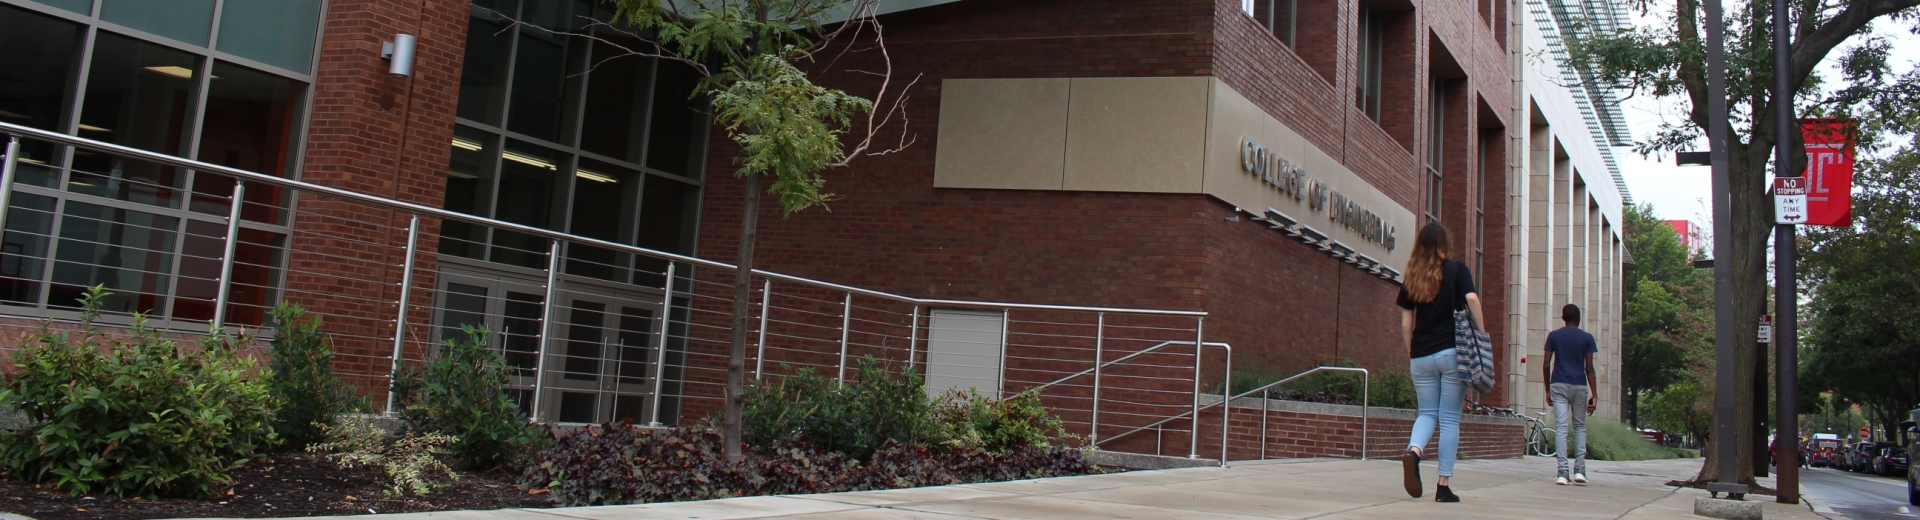 Photo of the College of Engineering Building\